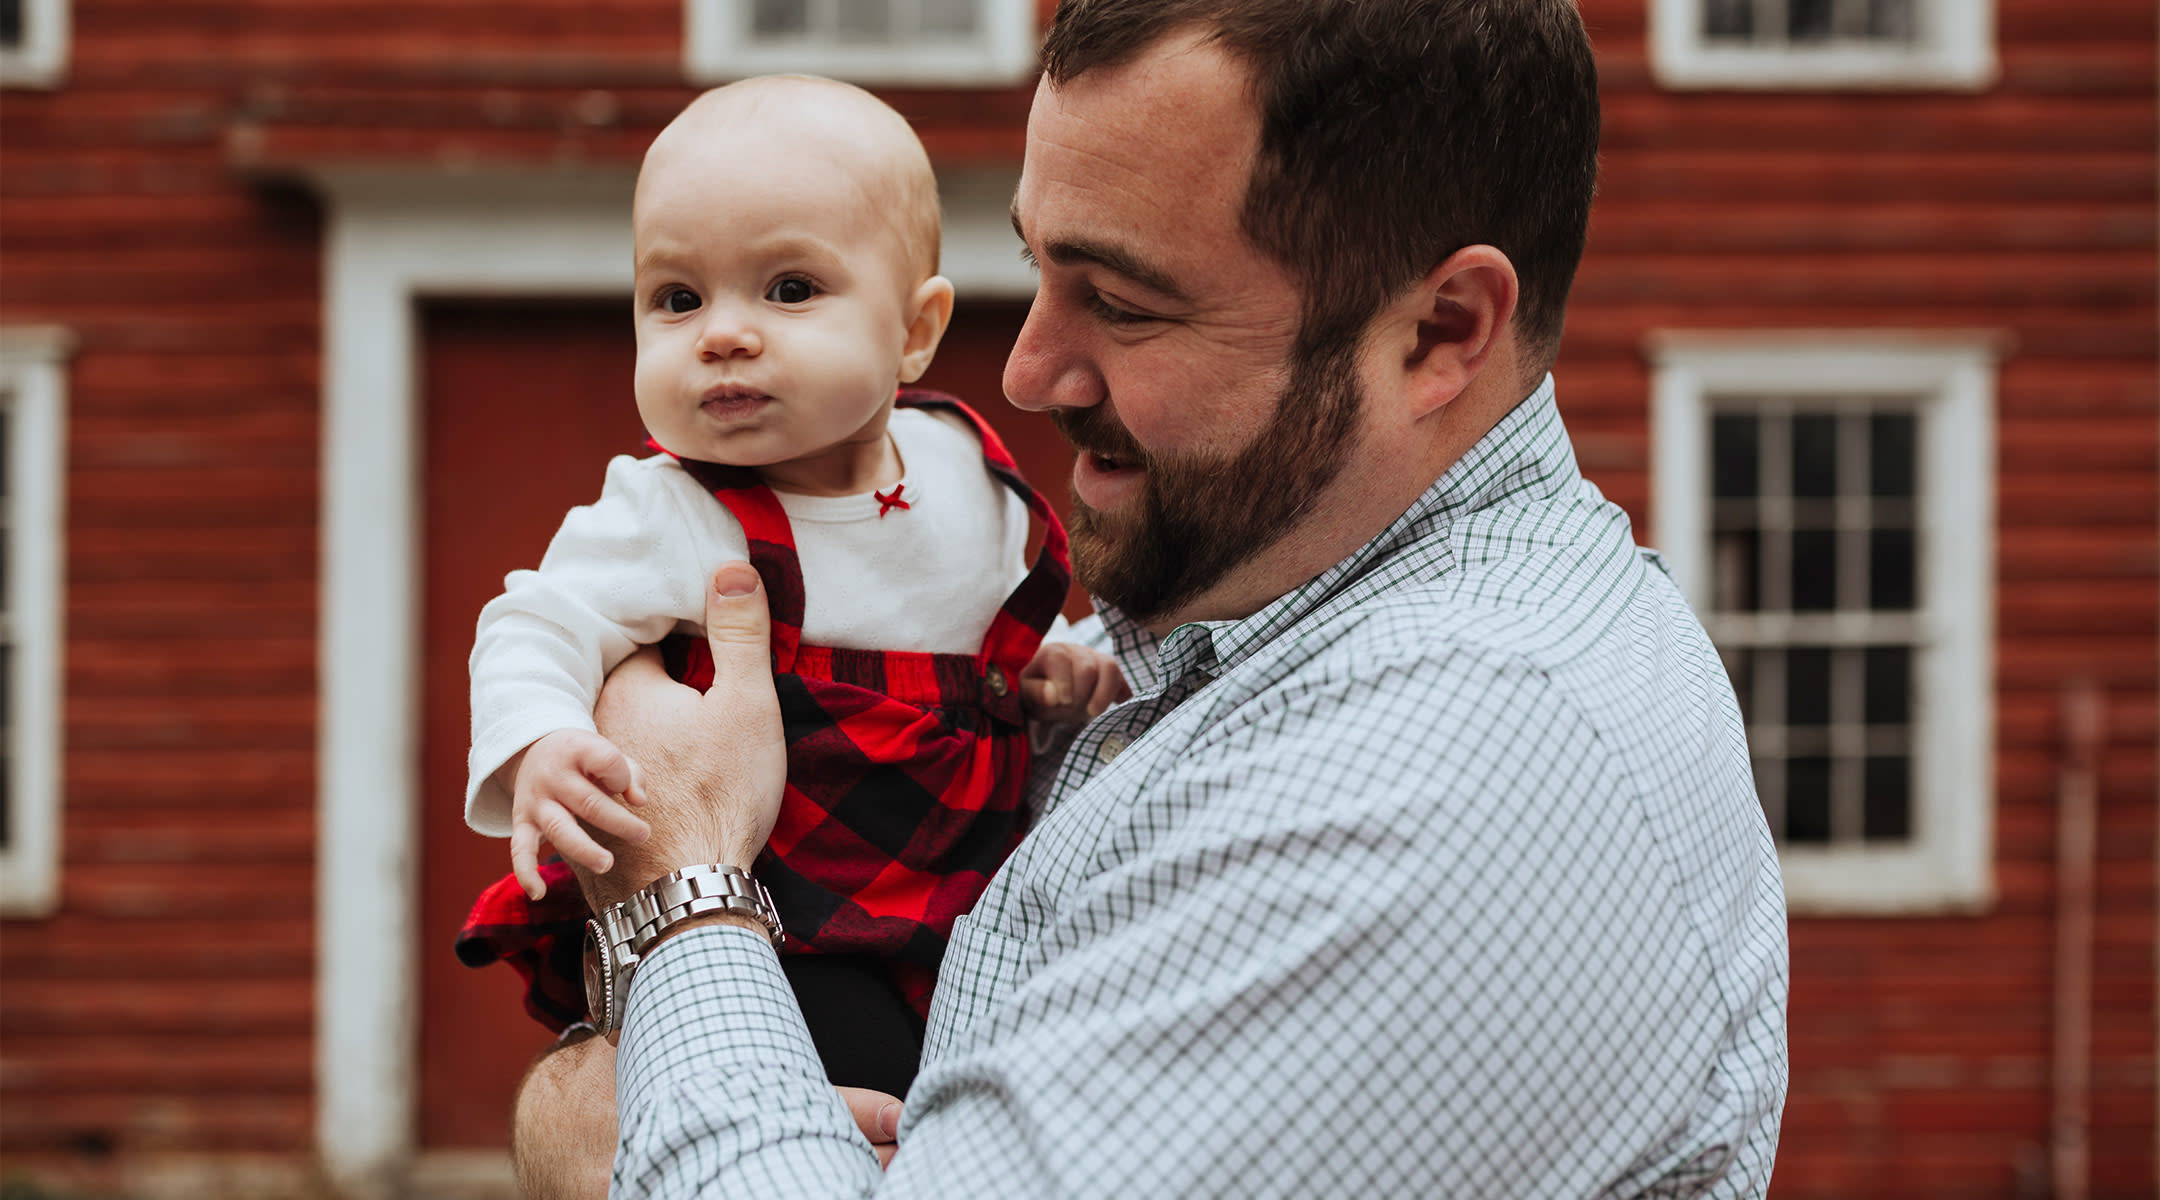 dad holding his baby who is dressed in a holiday outfit